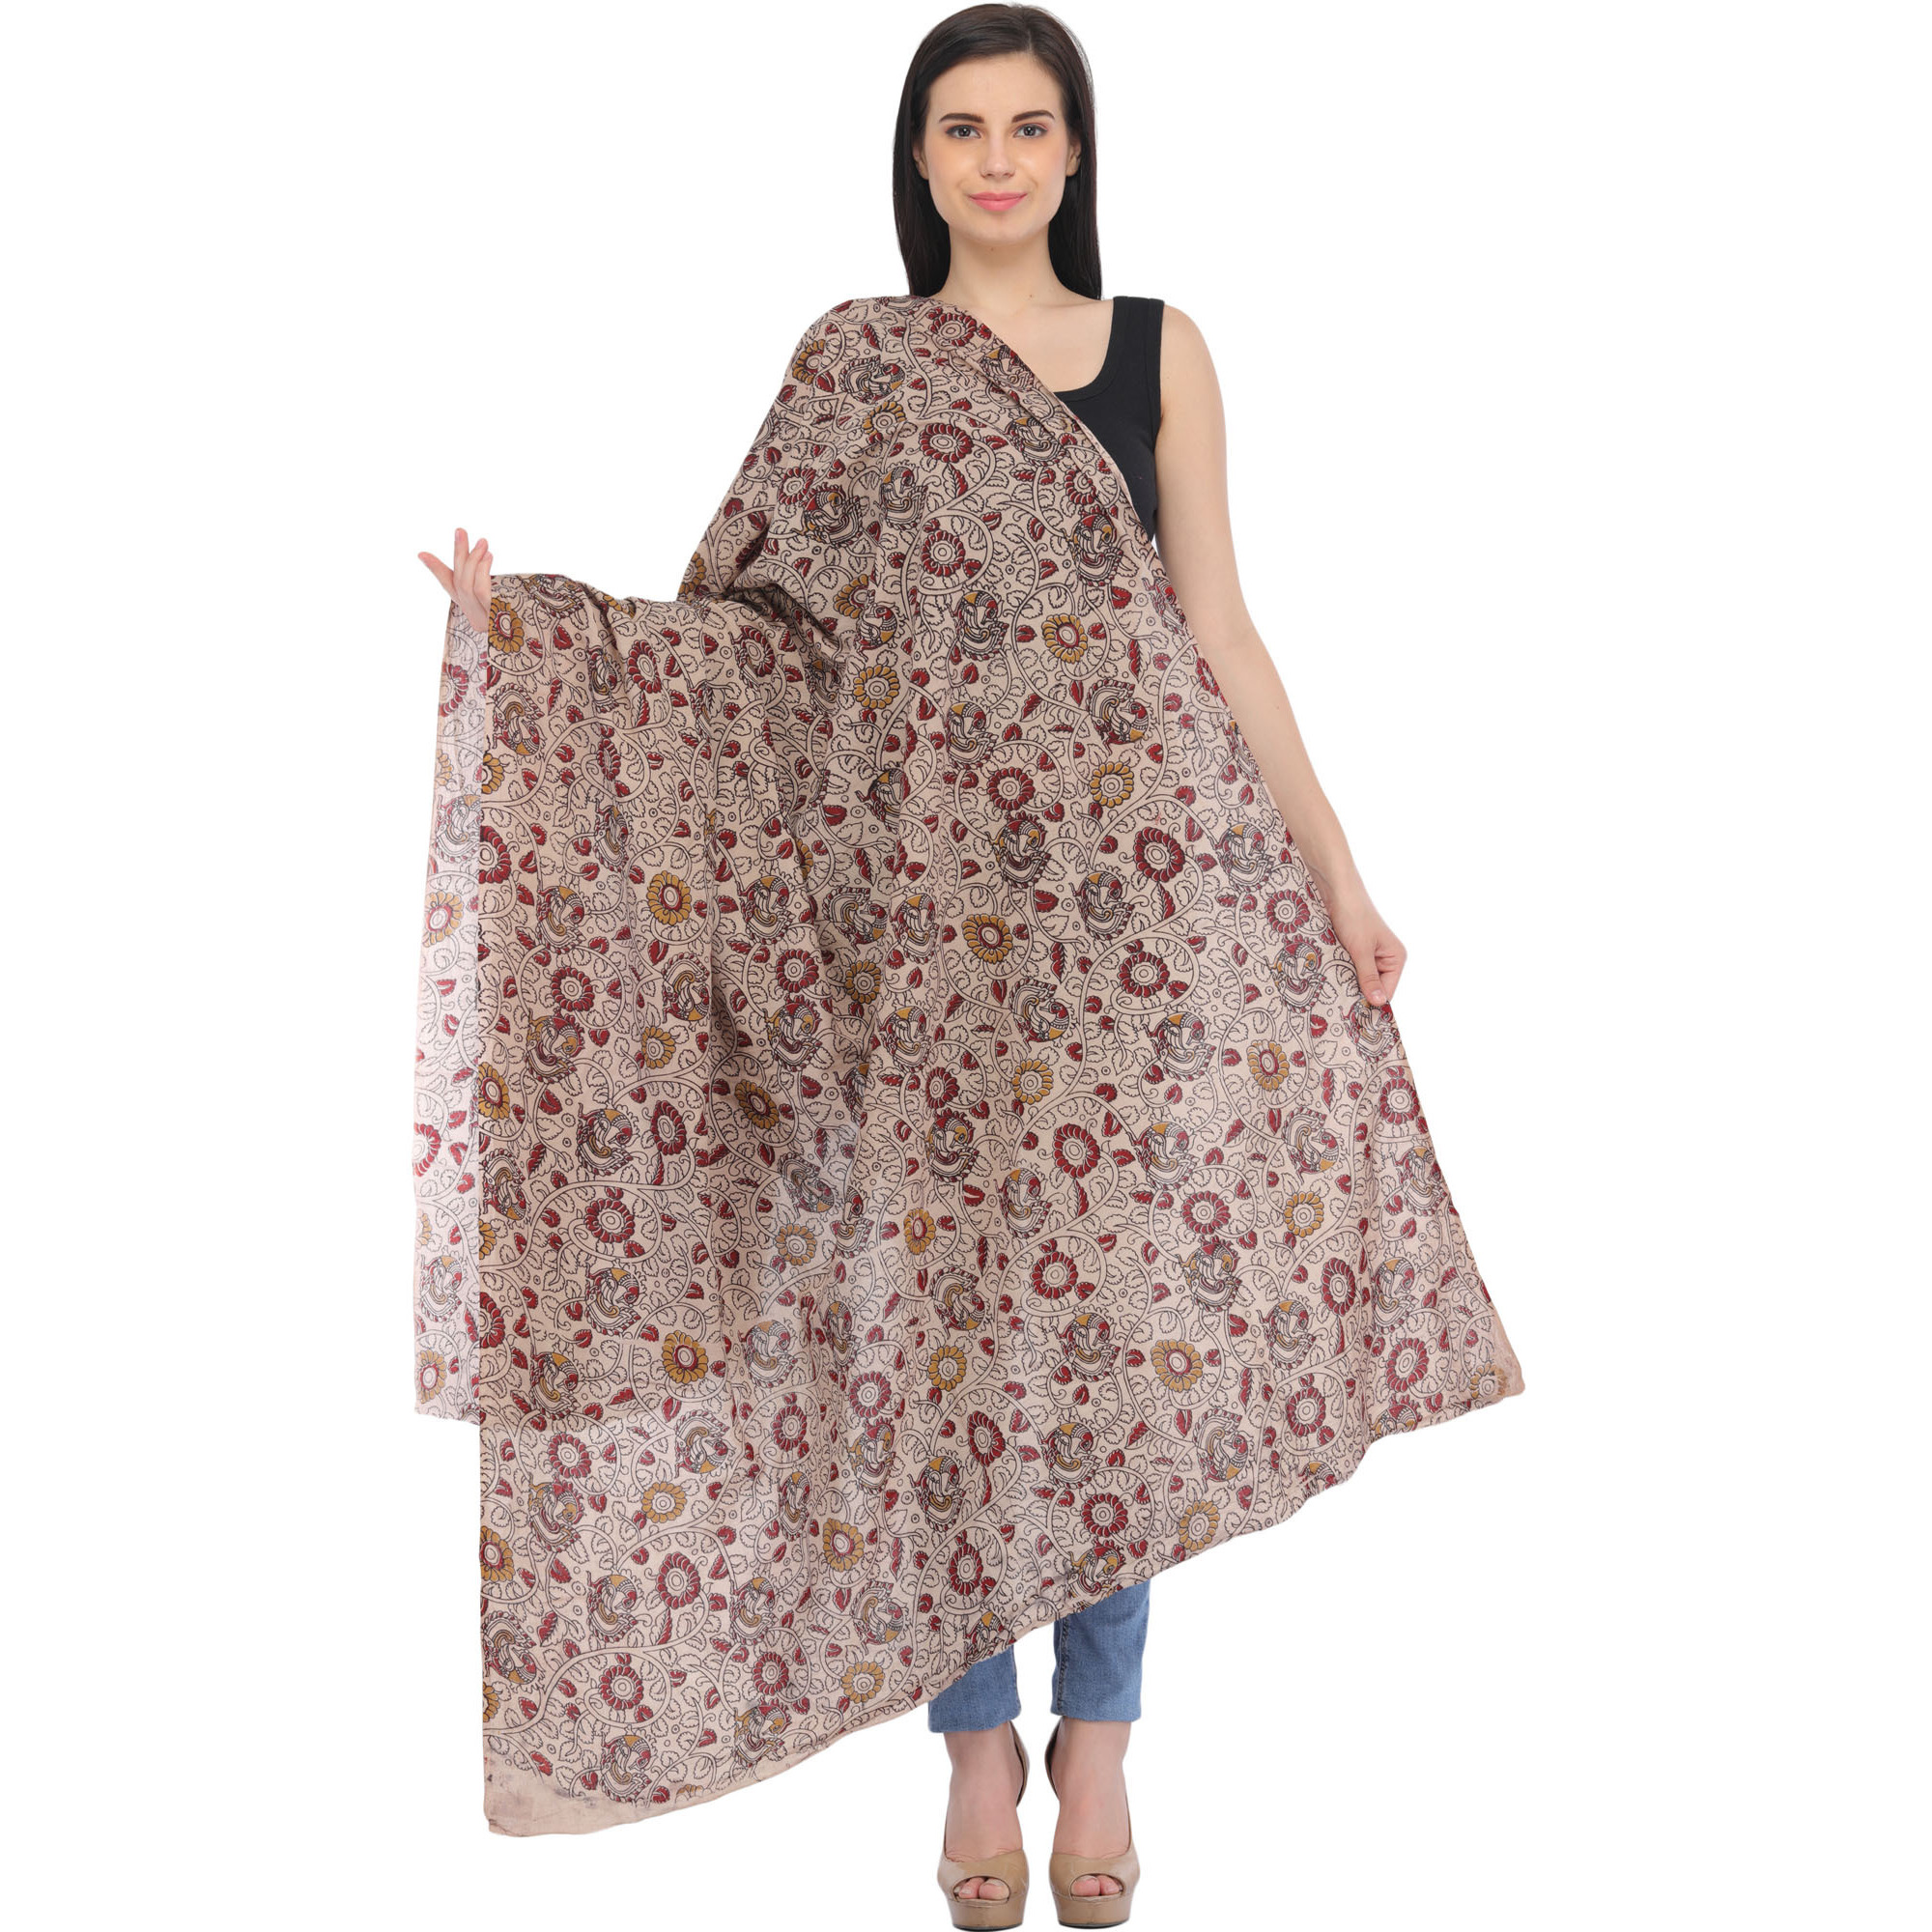 Whisper-Pink Kalamkari Hand-Painted Dupatta from Andhra Pradesh